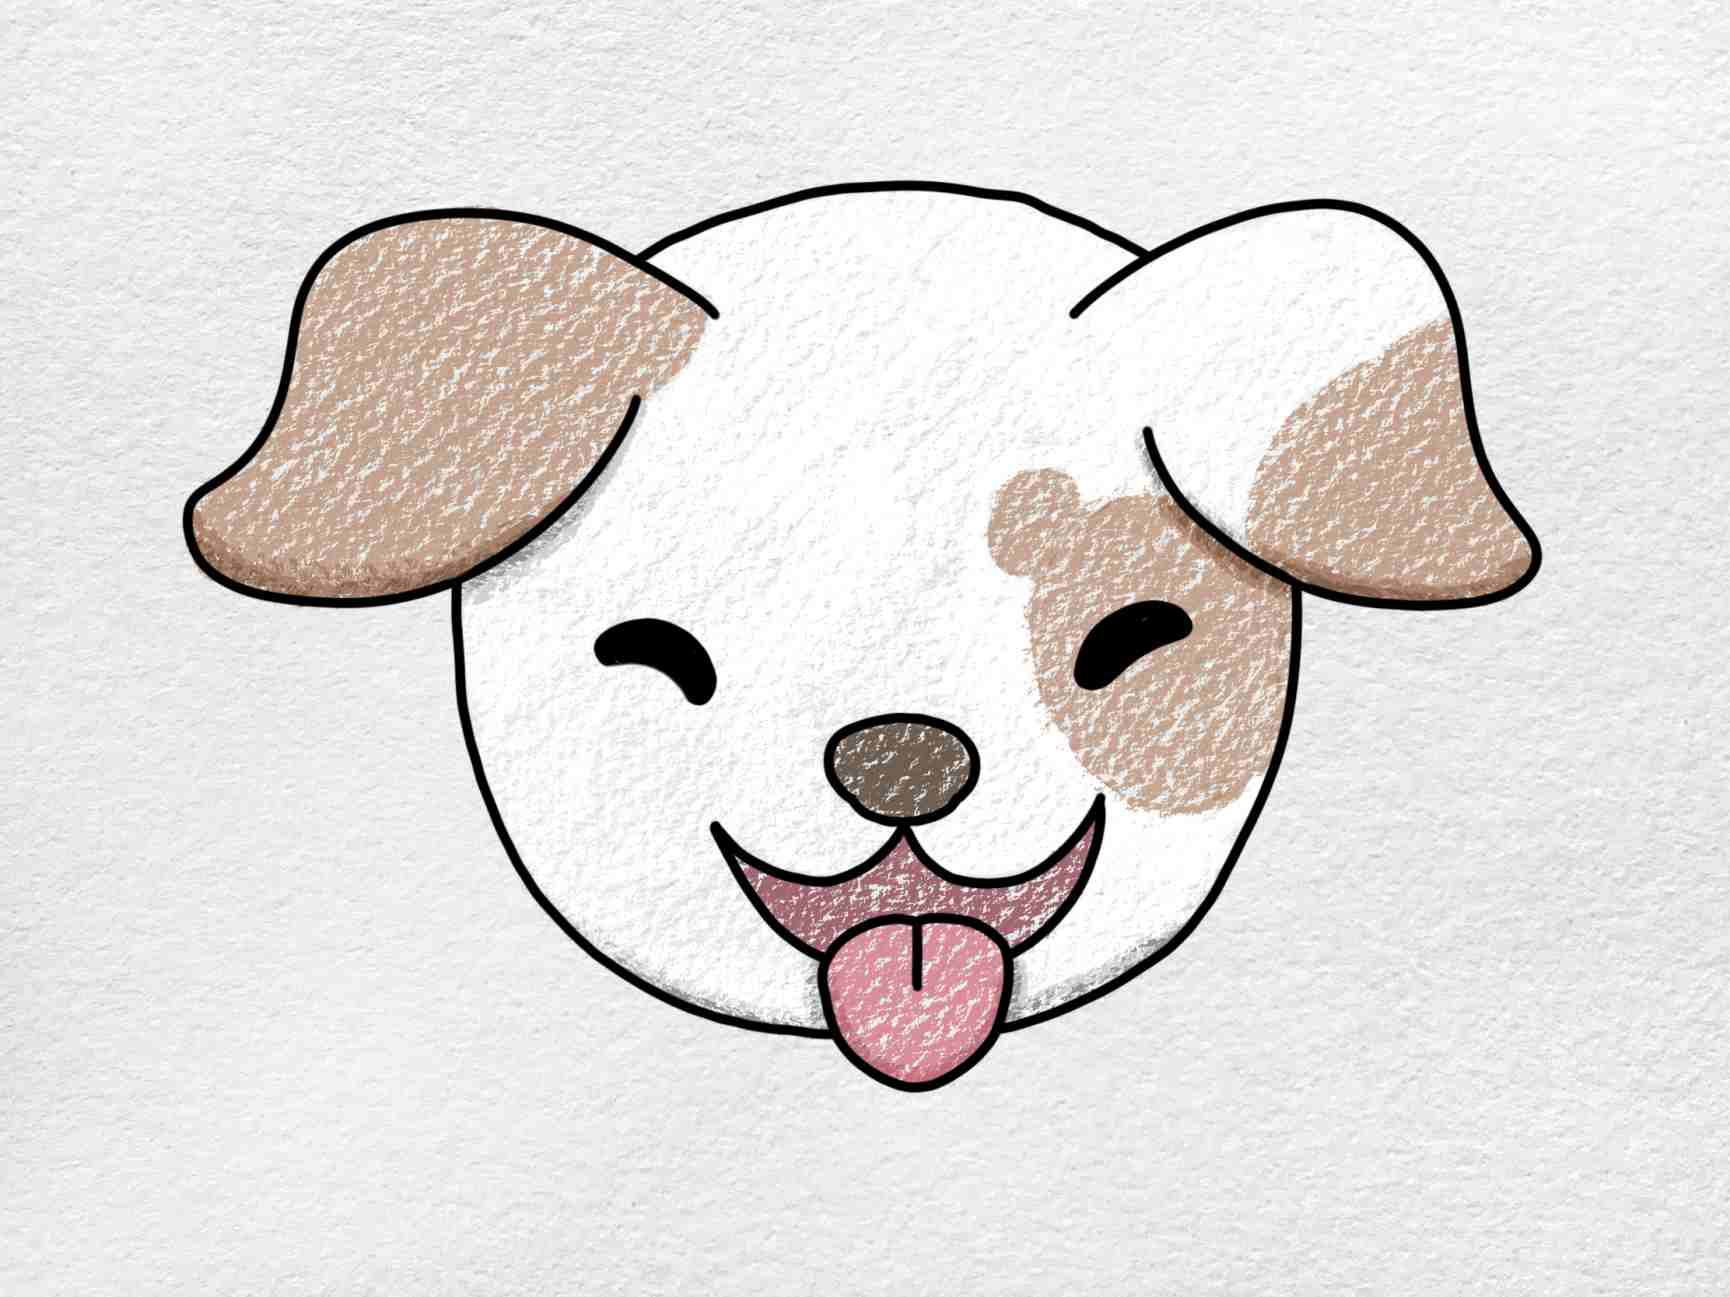 How To Draw A Dog Face: Step 6